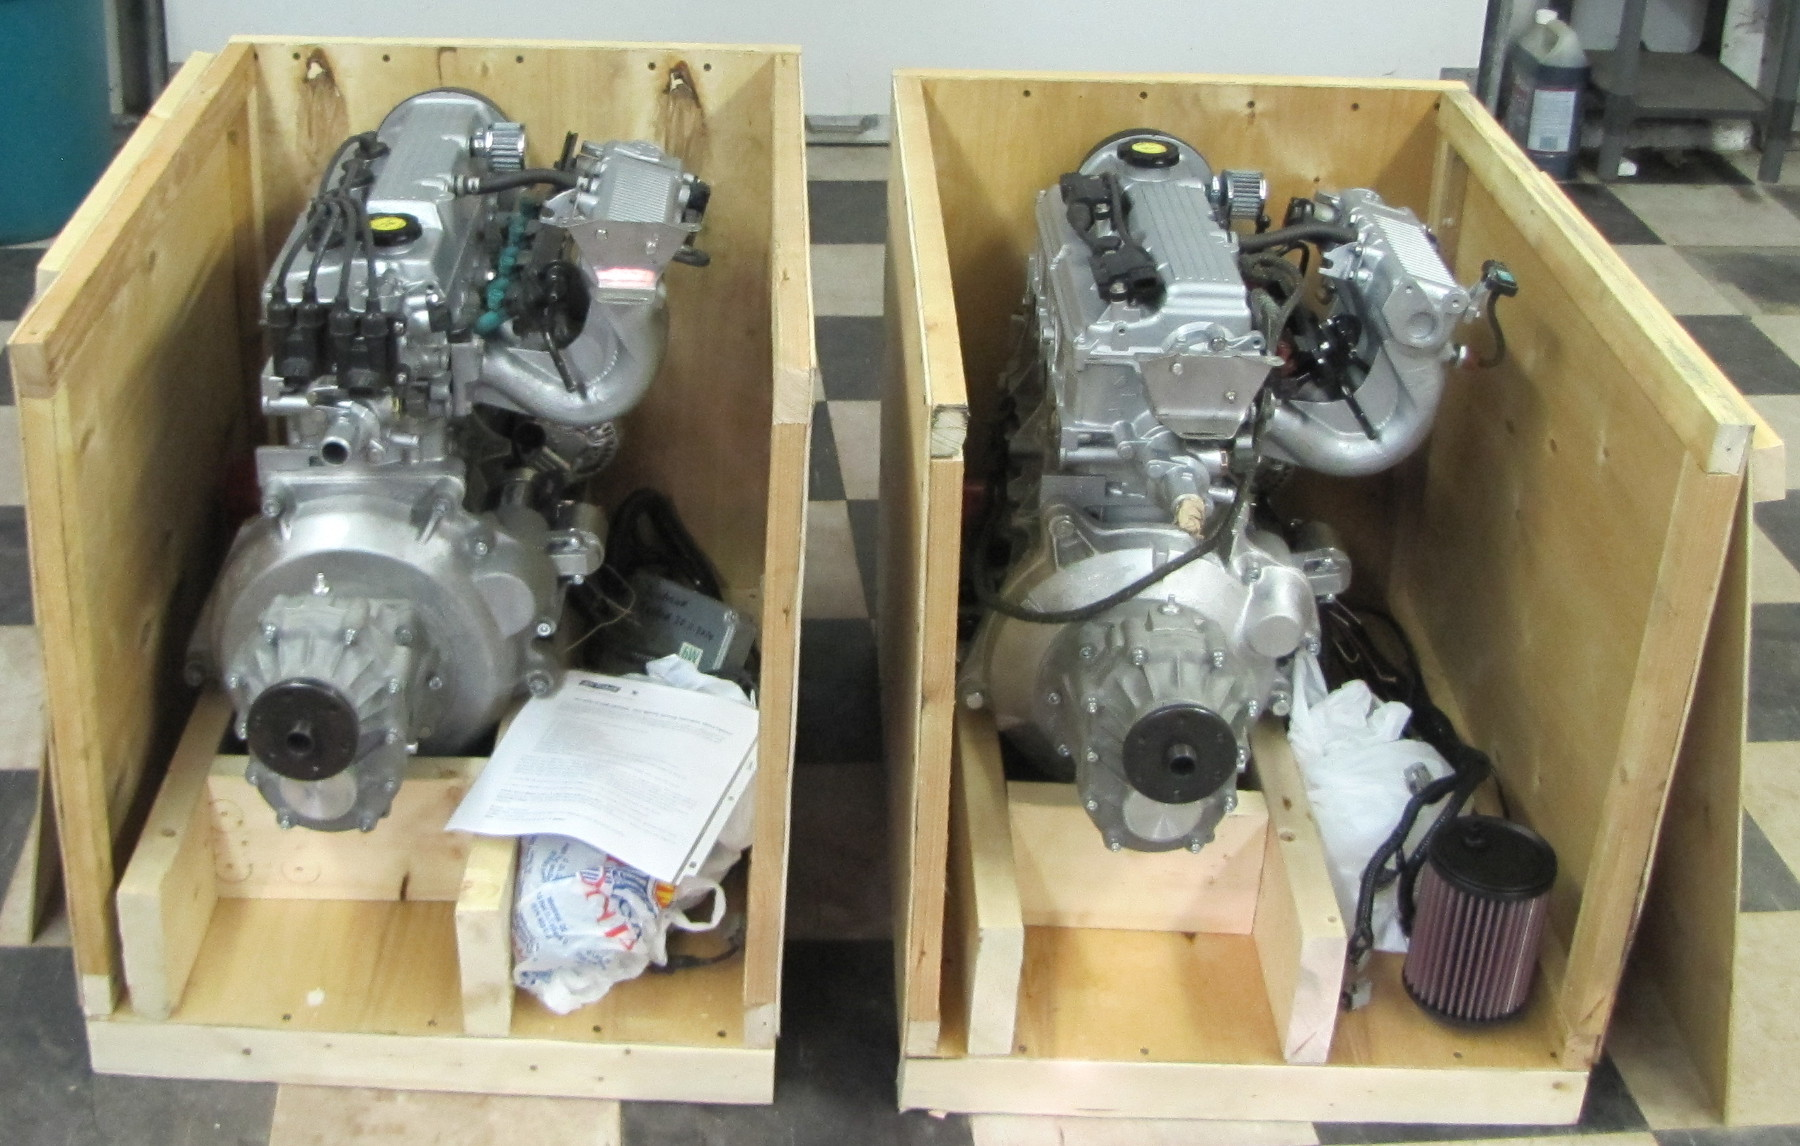 These are 2 engines - G13BB and G16B crated and ready go. They are very  simular, the same 16 valve SONS head, oil and cooling system.